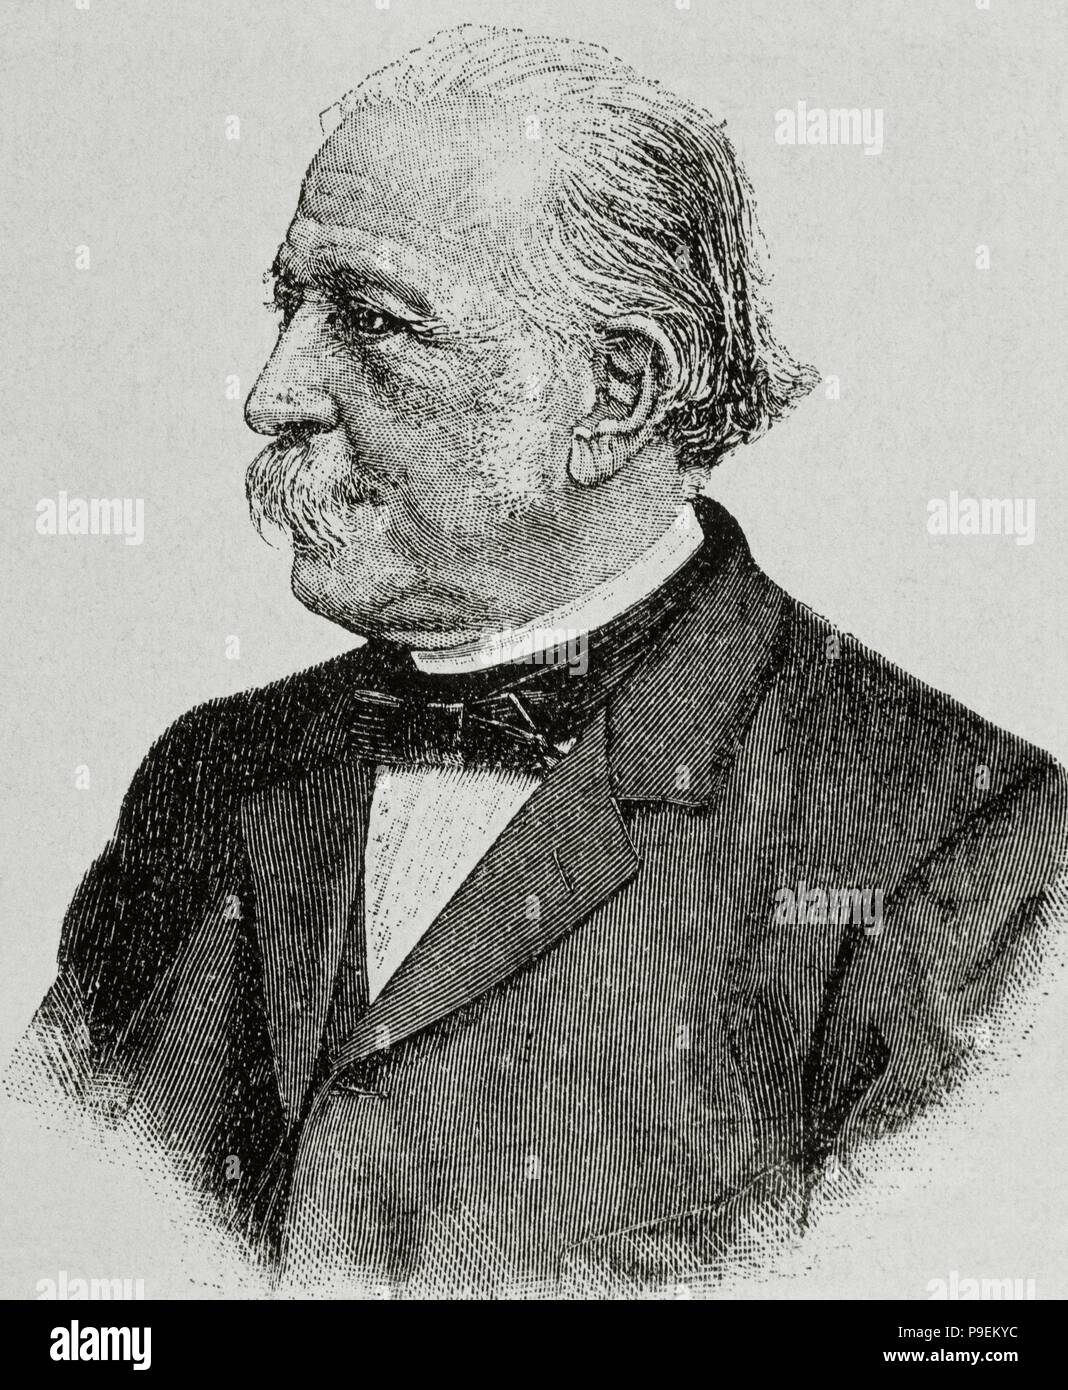 Theodor Fontane (1819-1898). German writer. Portrait. Engraving. Stock Photo